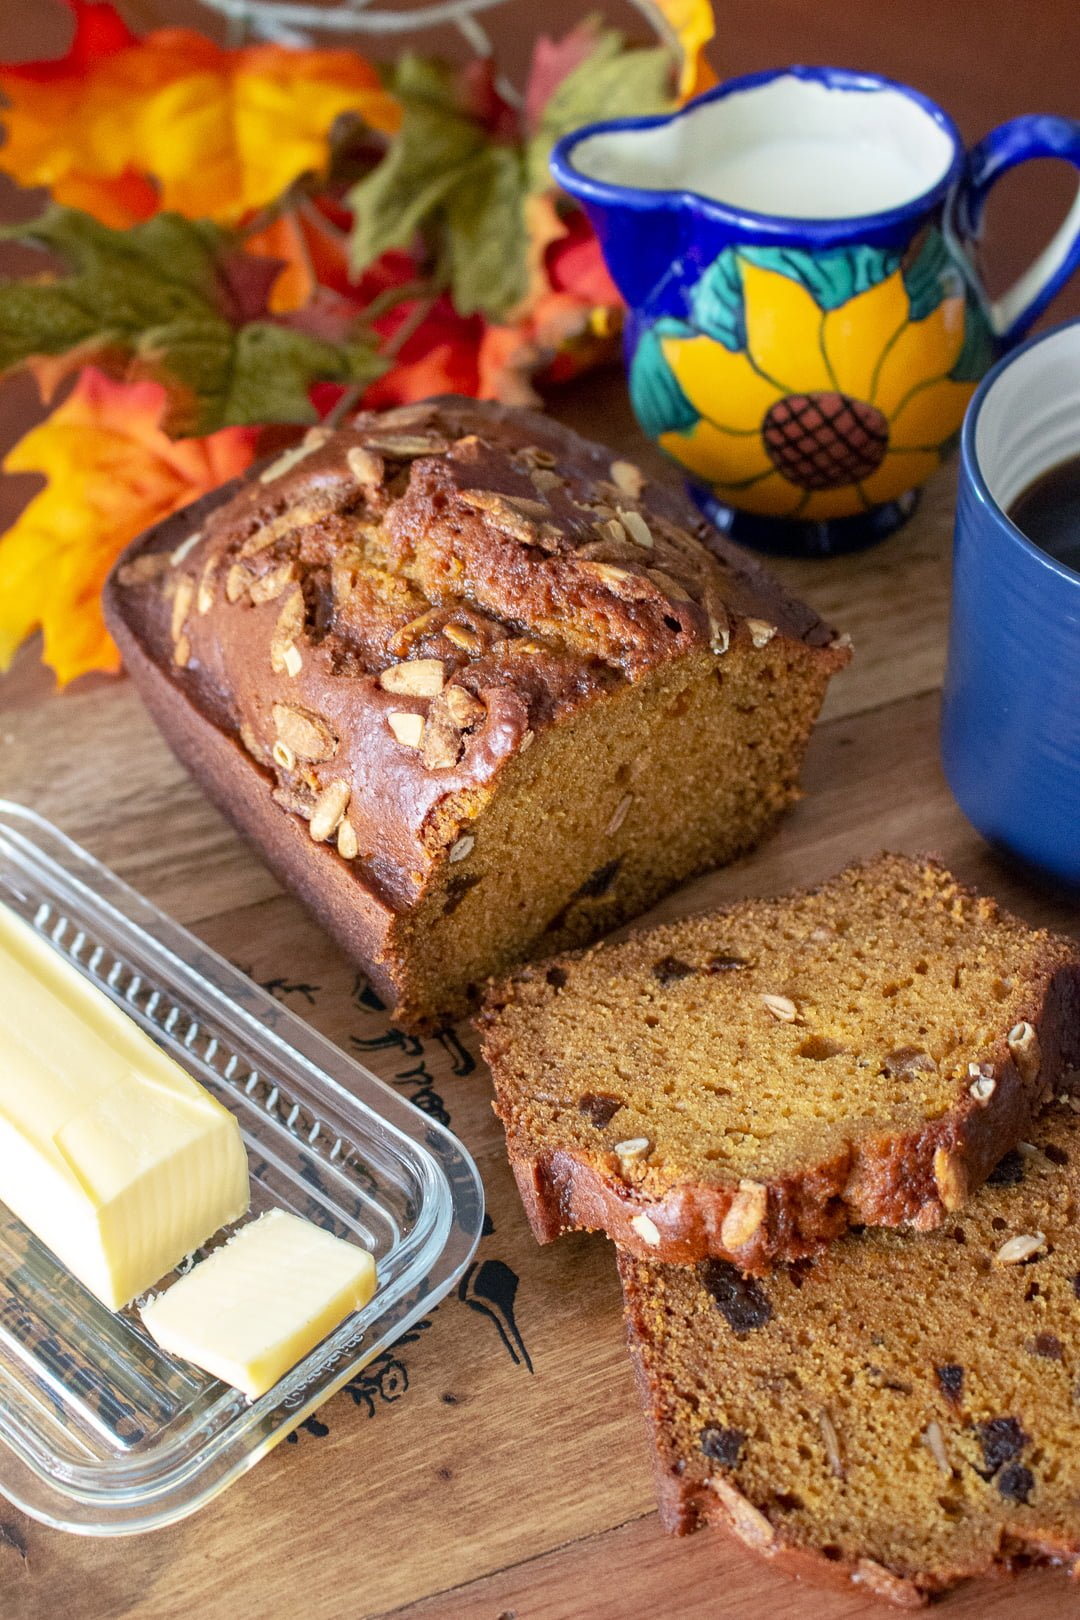 Pumpkin Seed And Apricot pumpkin Sweet Bread- This is a very moist and delicious recipe of pumpkin bread. The surprise in this bread is the addition of dried apricots and the candied pumpkin seeds sprinkled over the bread.